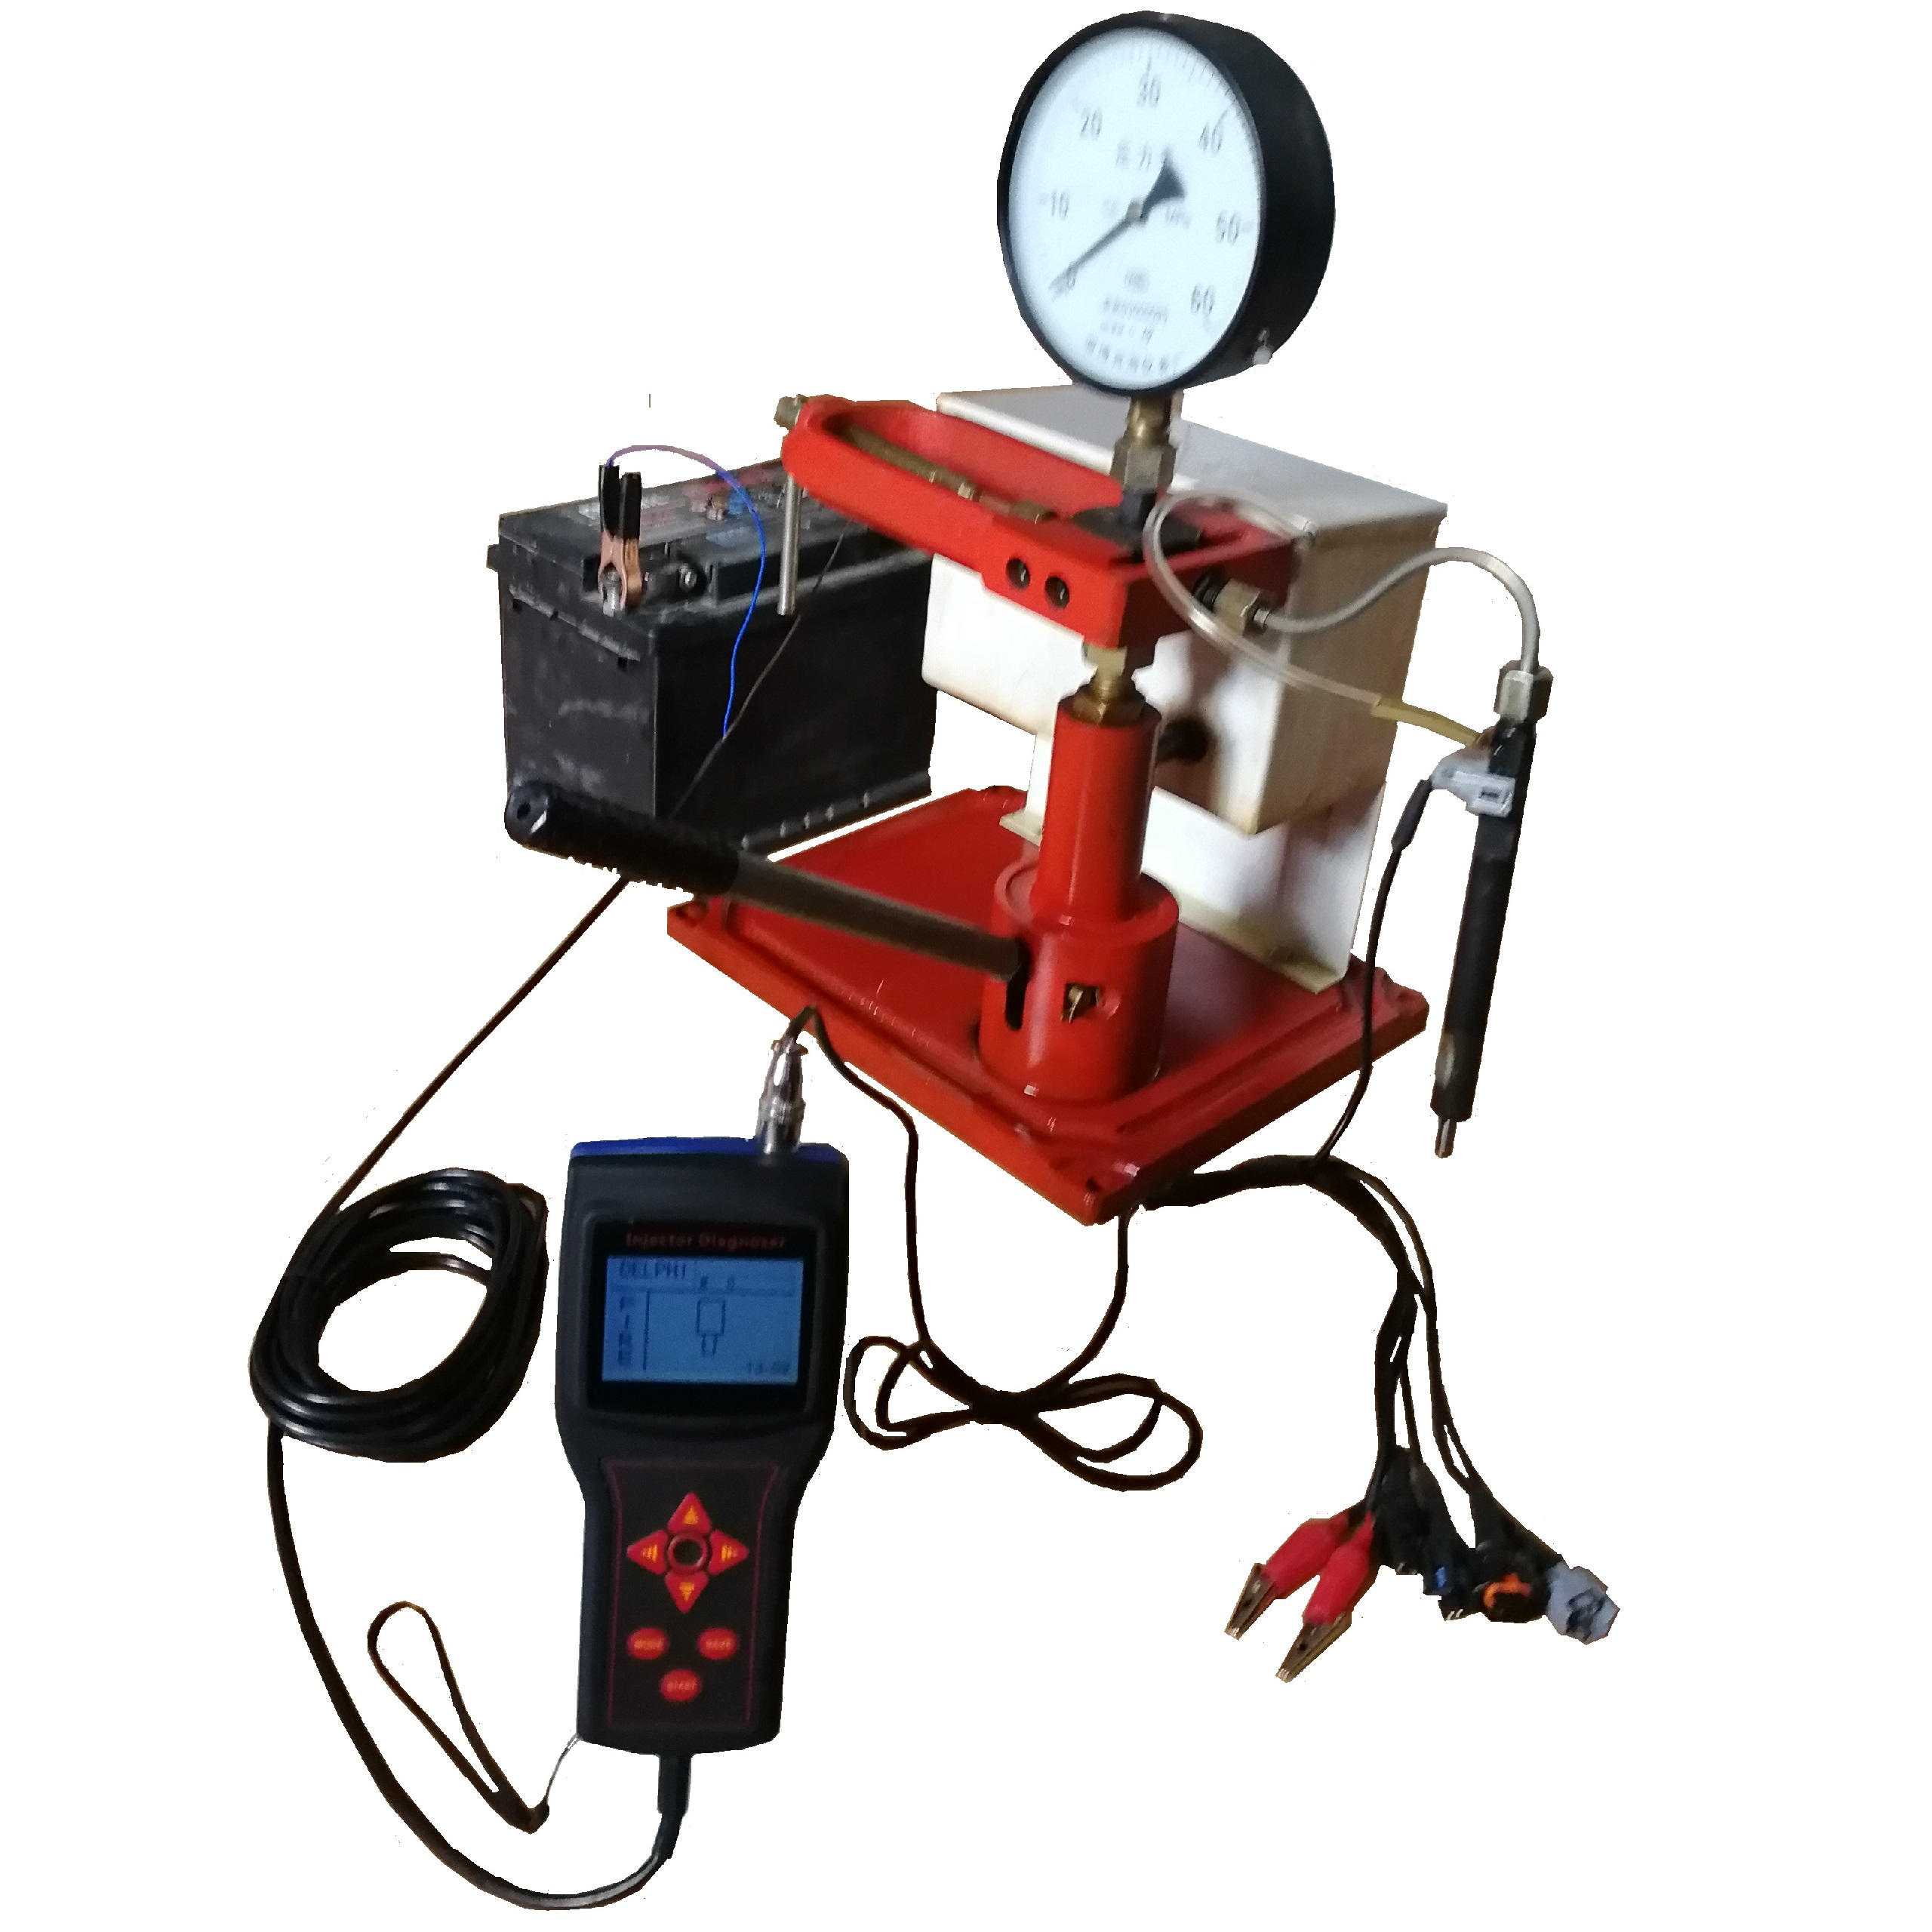 CRD-100 Injector Diagnoser